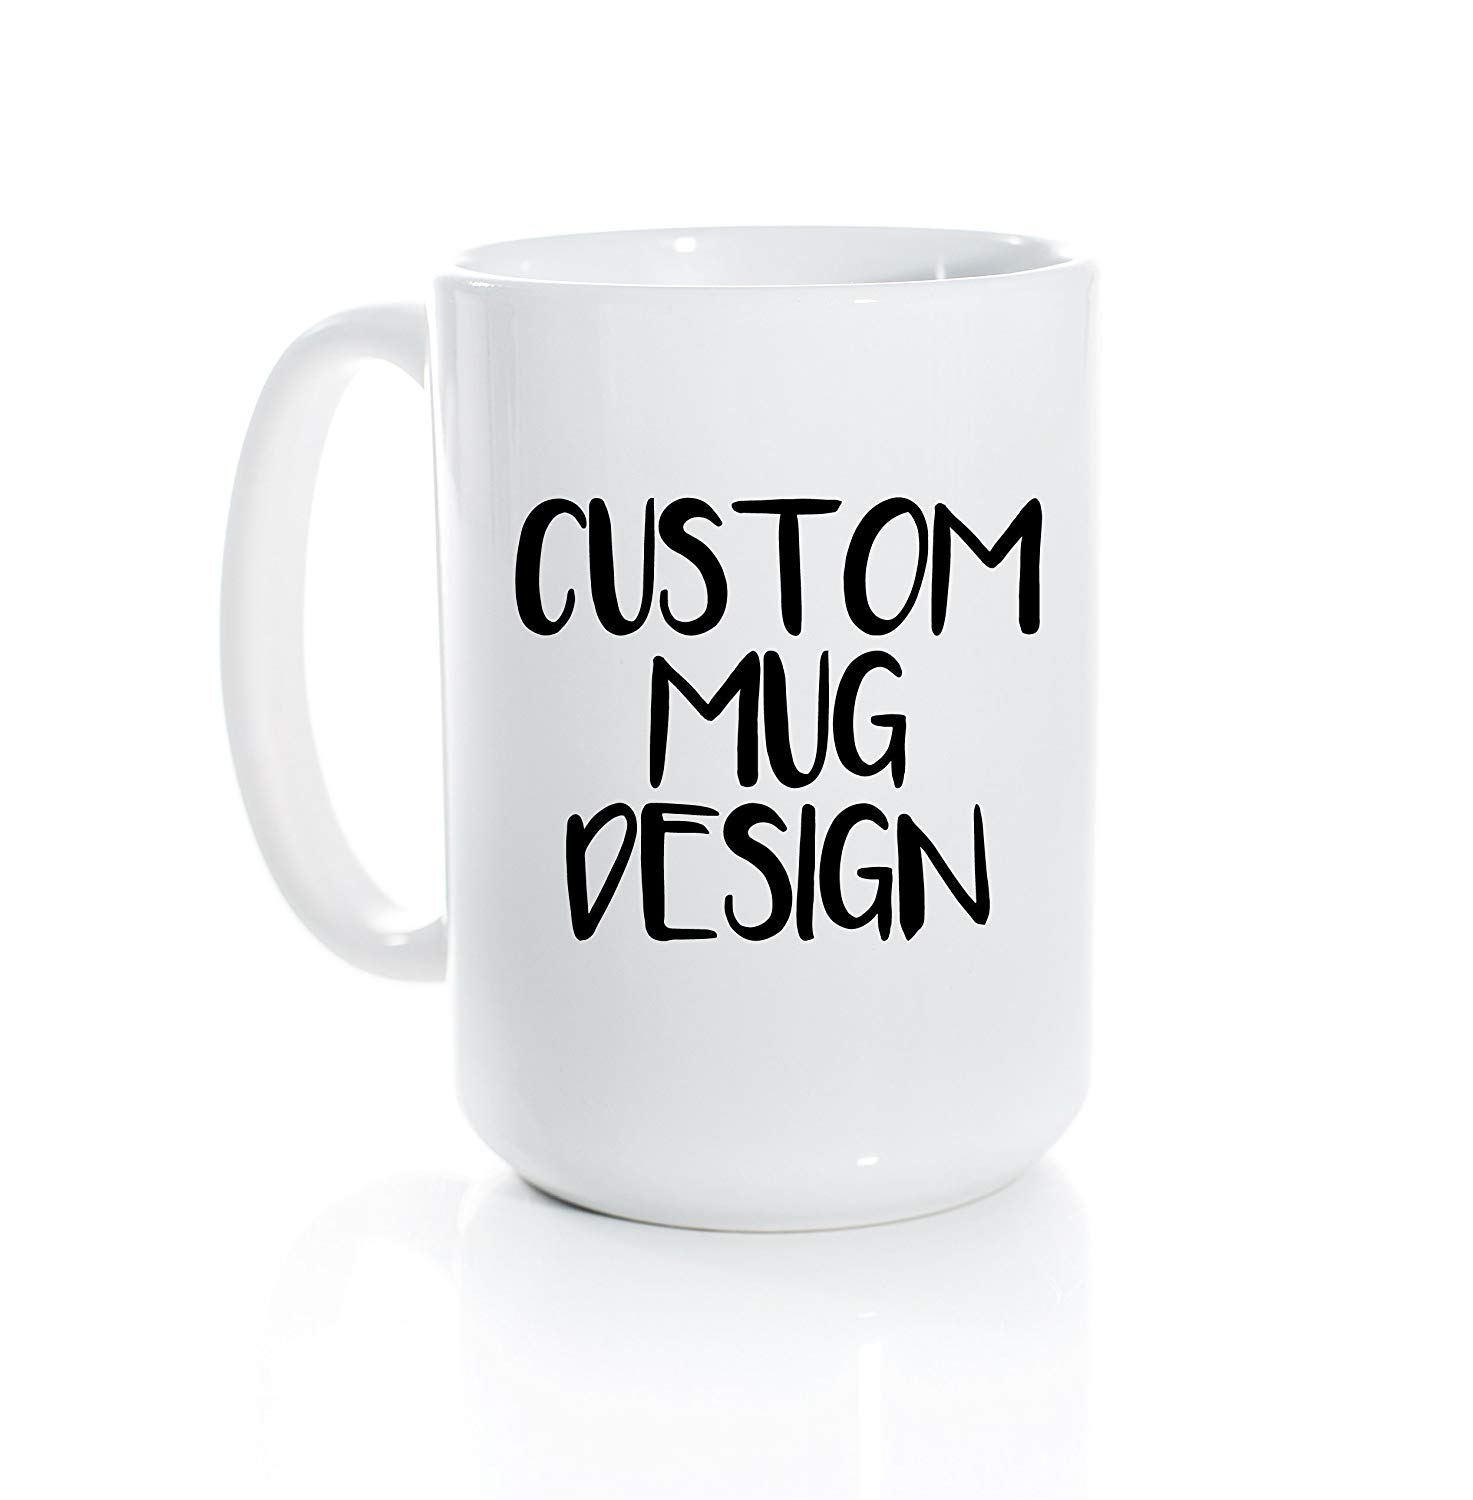 Custom Coffee Mug Personalized Design Choose Your Own Text